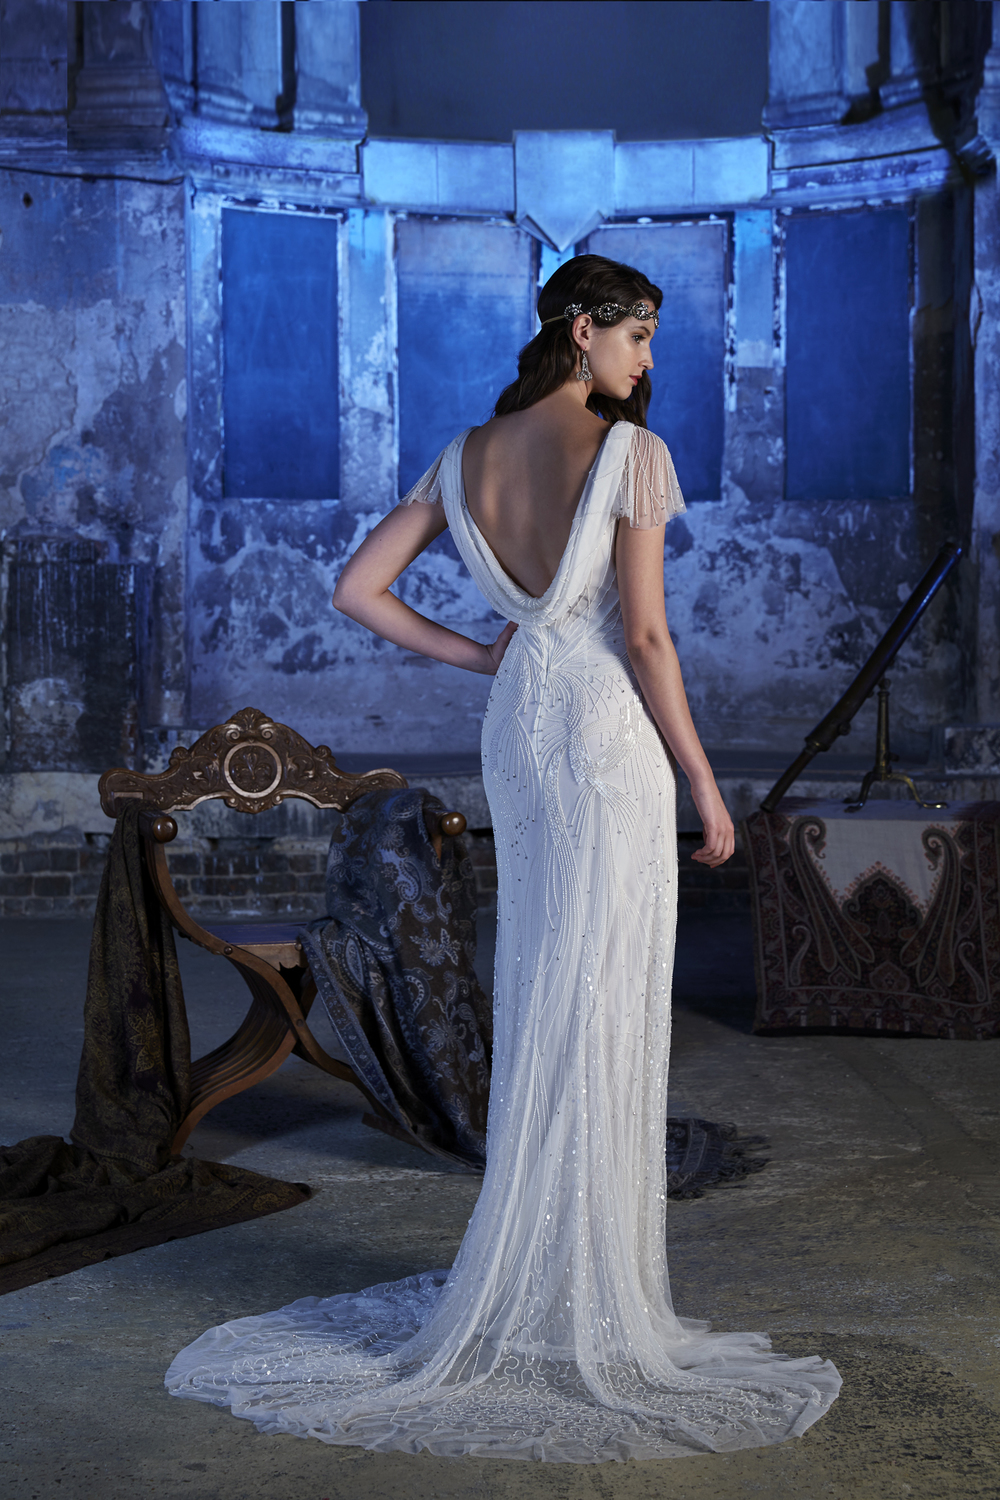 aquila-dress-back, Vintage inspired Wedding Dresses, 2017 Stardust Collection , Eliza Jane Howell , Images - Chris Dawes Photography